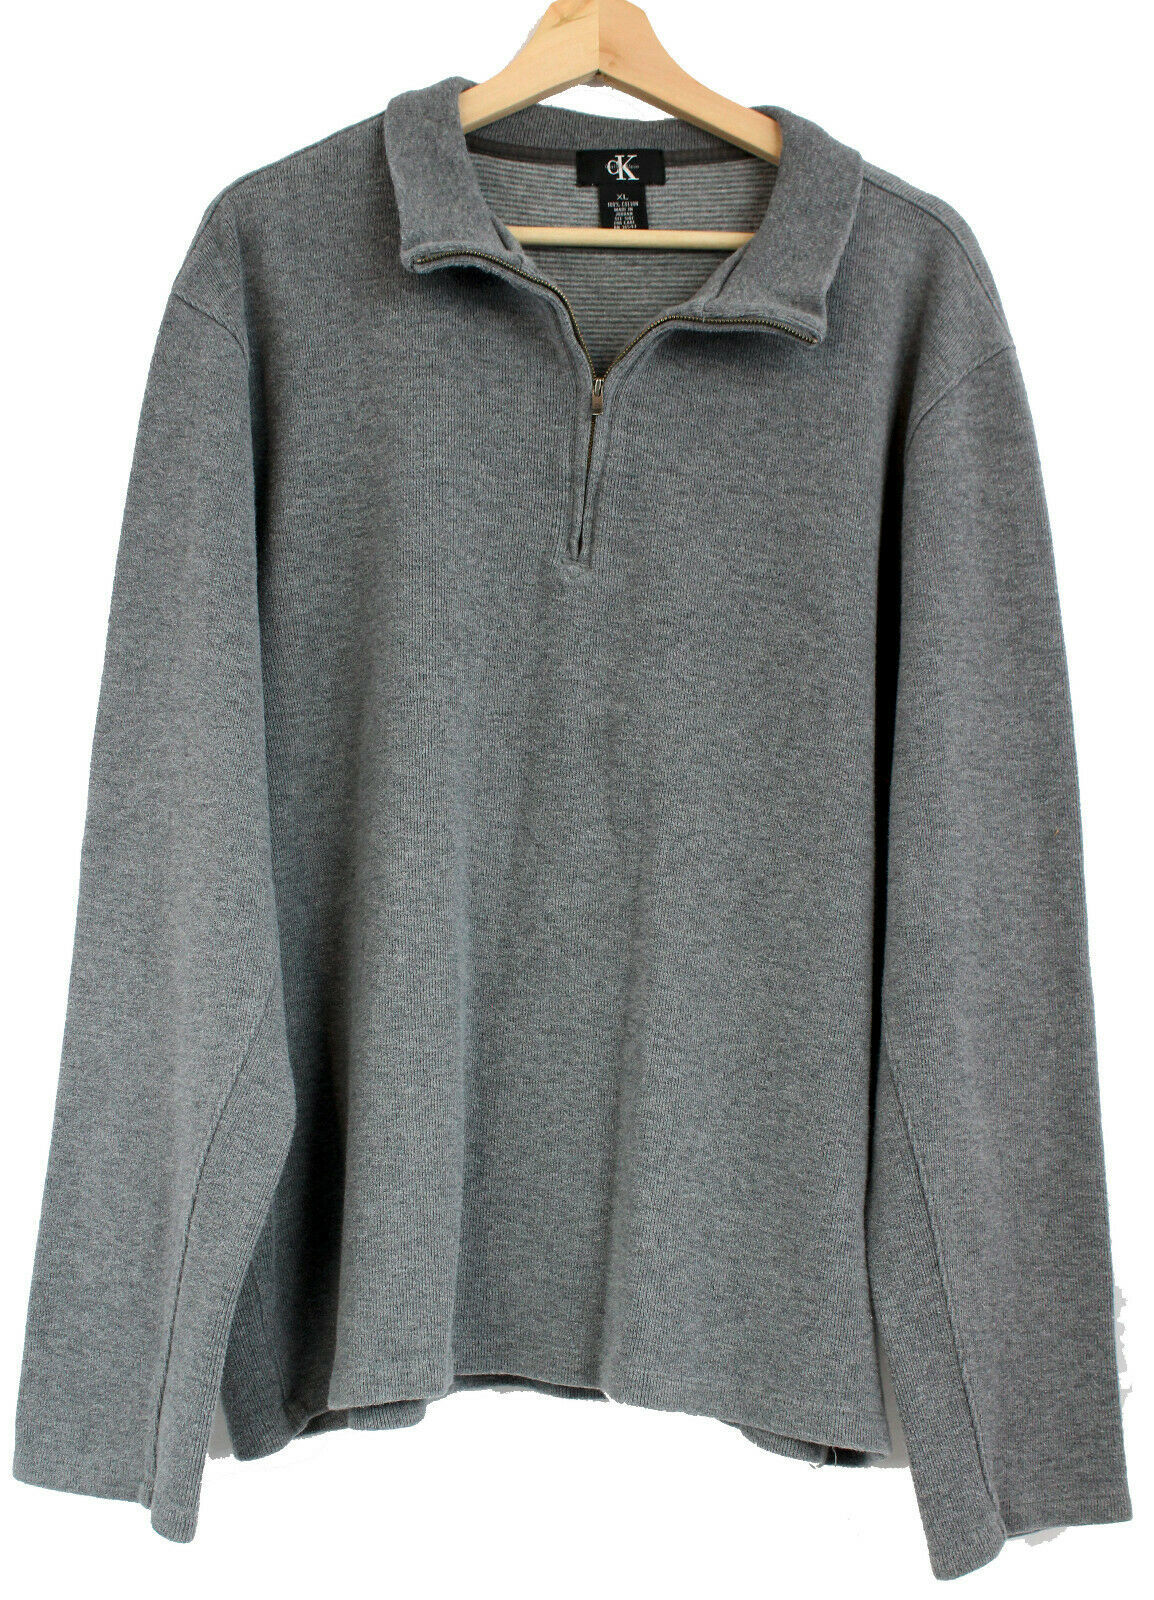 Primary image for Calvin Klein Mens Classic Cotton Quarter-Zip Pullover Sweater Heather Gray XL